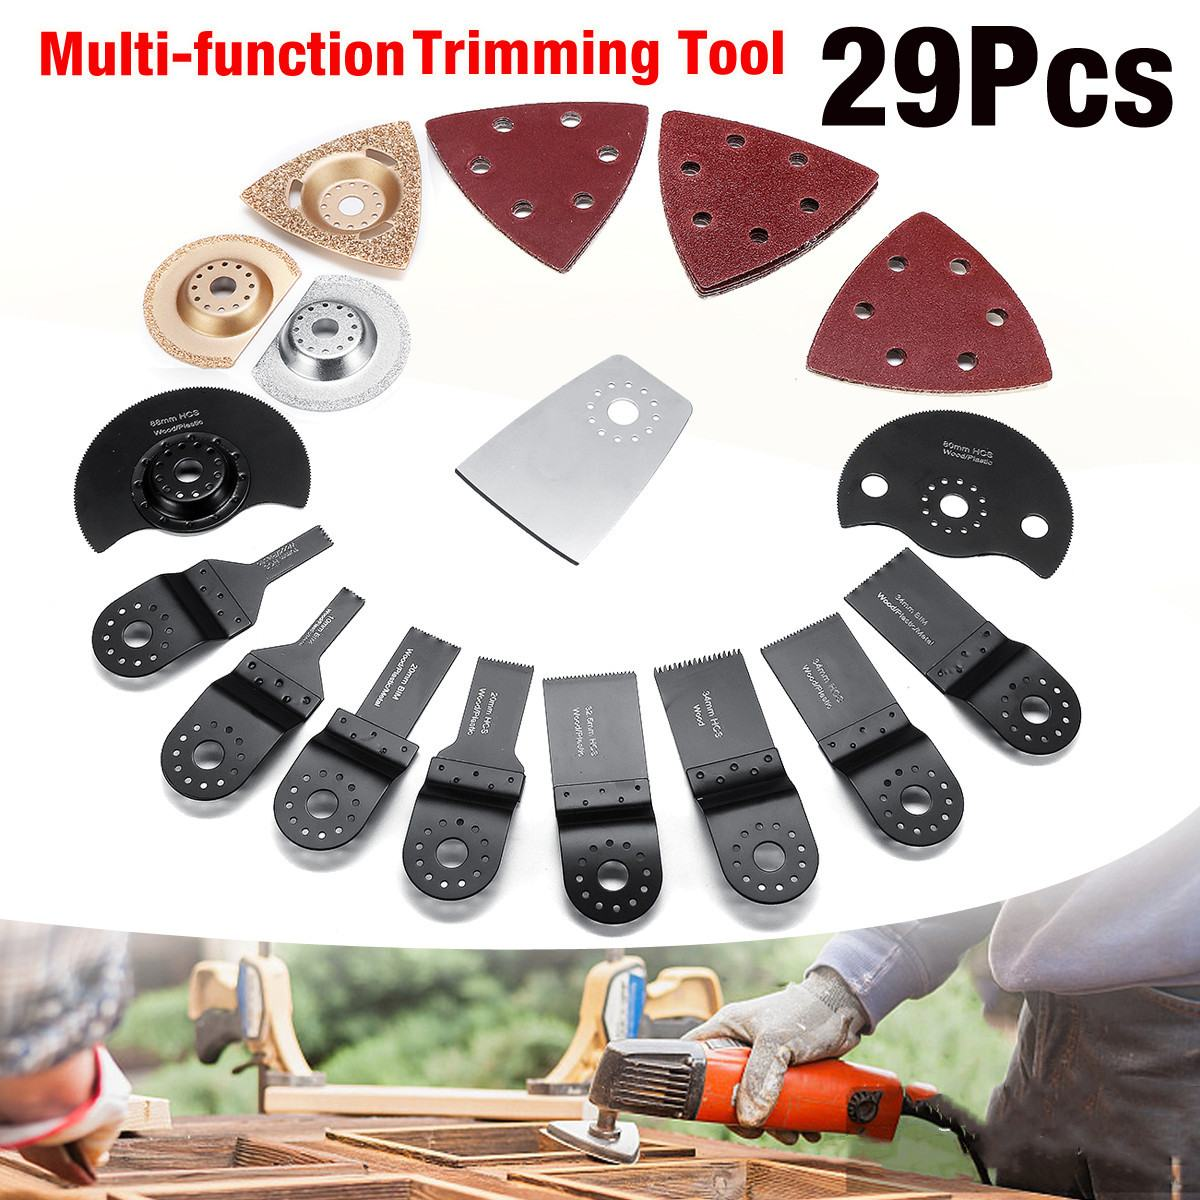 29PCS Multi function Trimming Tool Woodworking Power Tools Accessories Multi Purpose Oscillating Tool